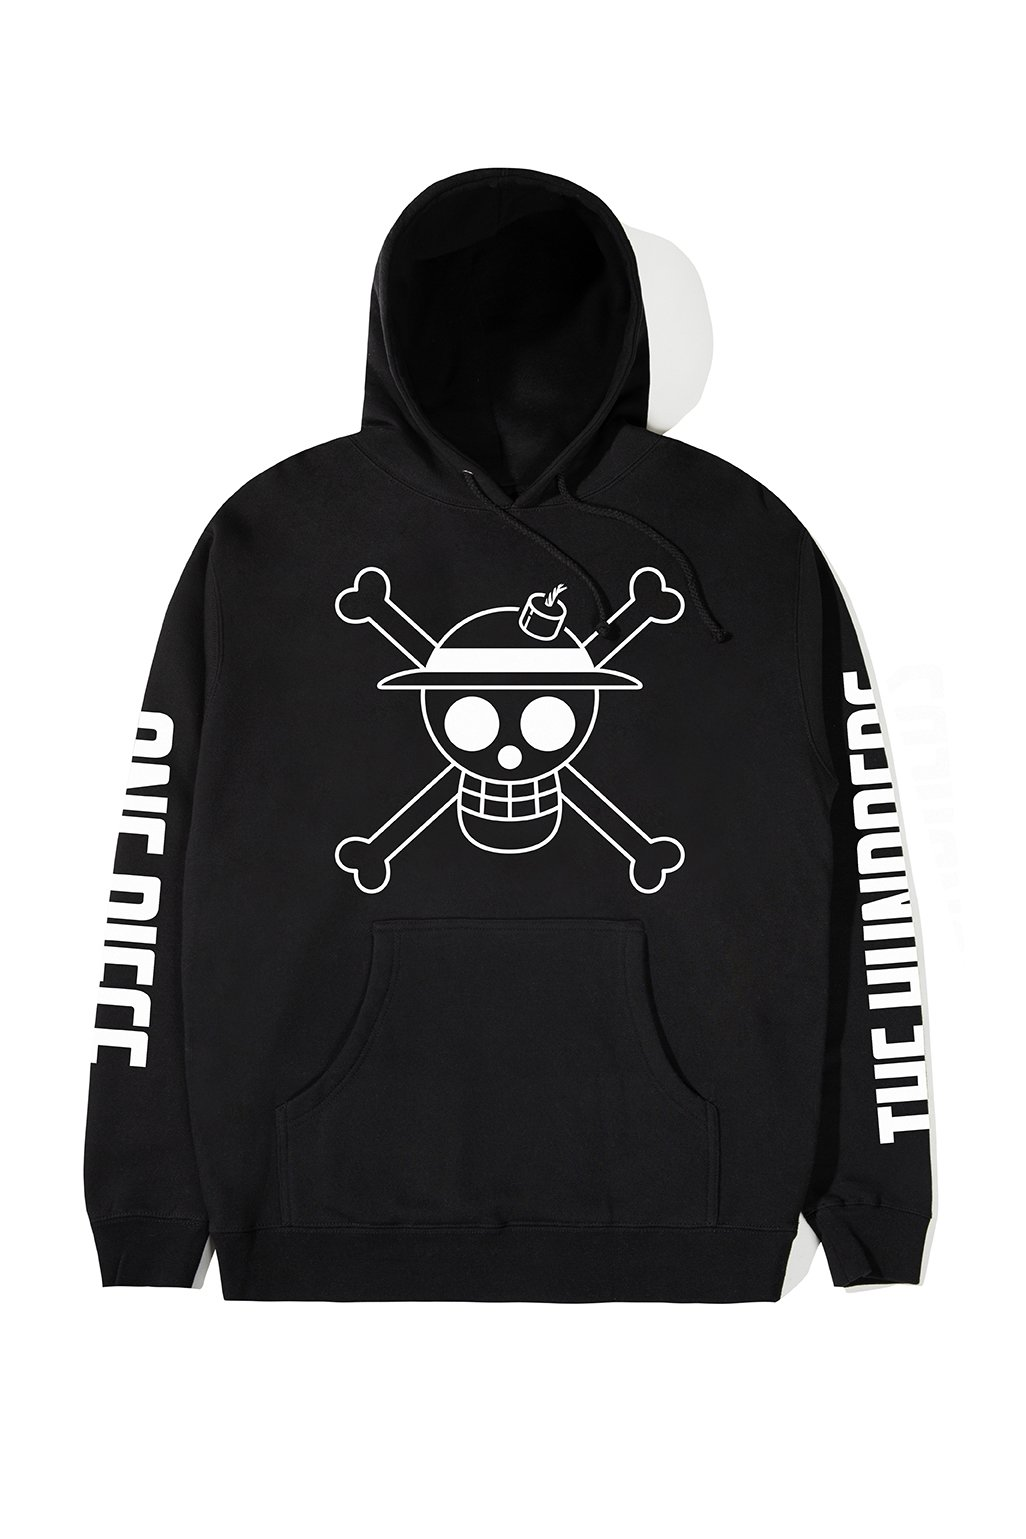 The Hundreds One Piece Jolly Roger Pullover